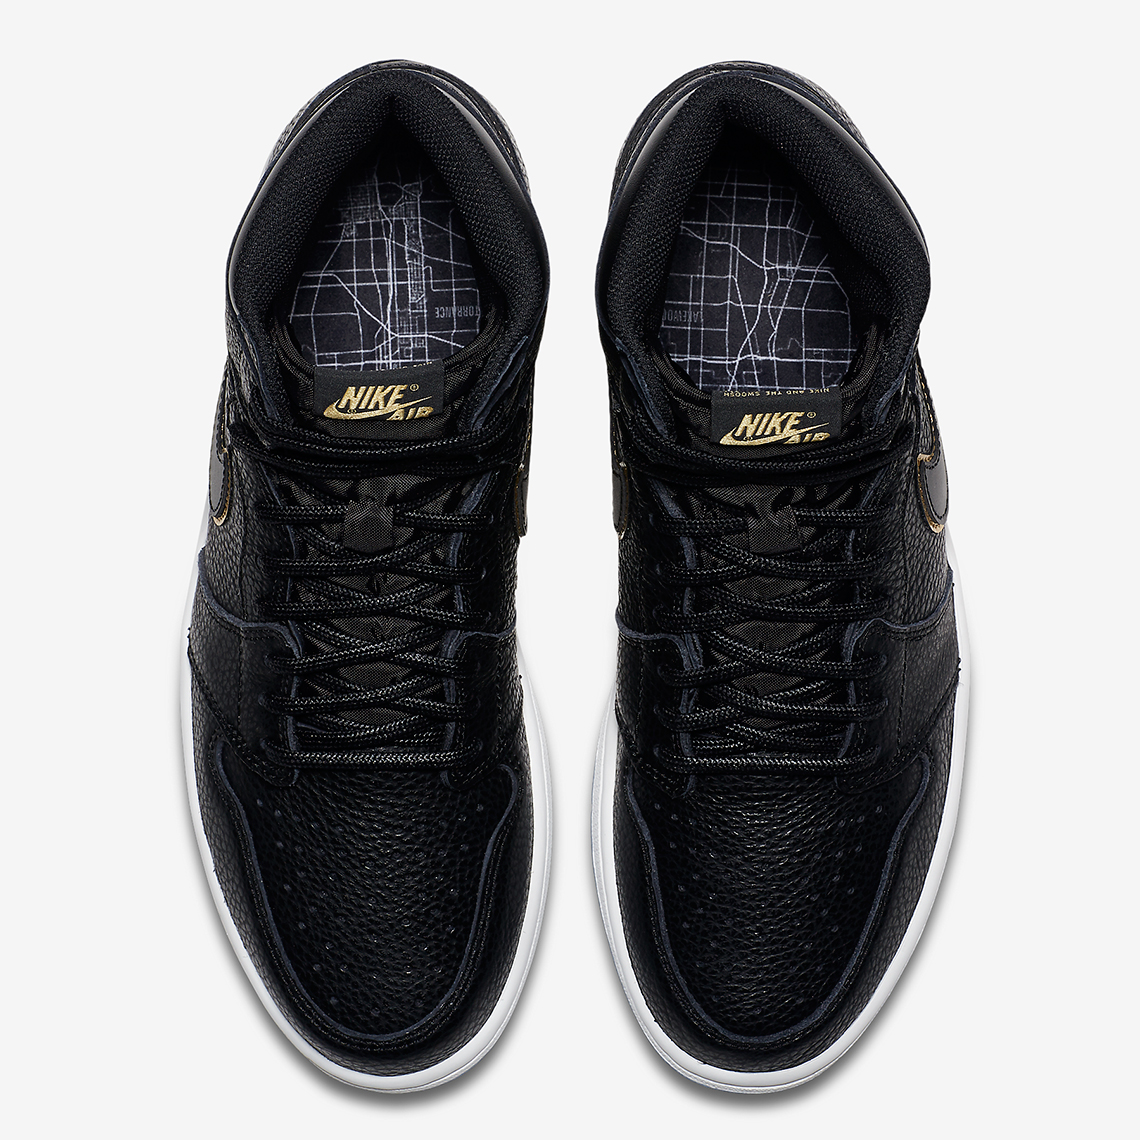 77d05c585112 Air Jordan 1 Black and Gold Tumbled Leather Official Images 555088 ...